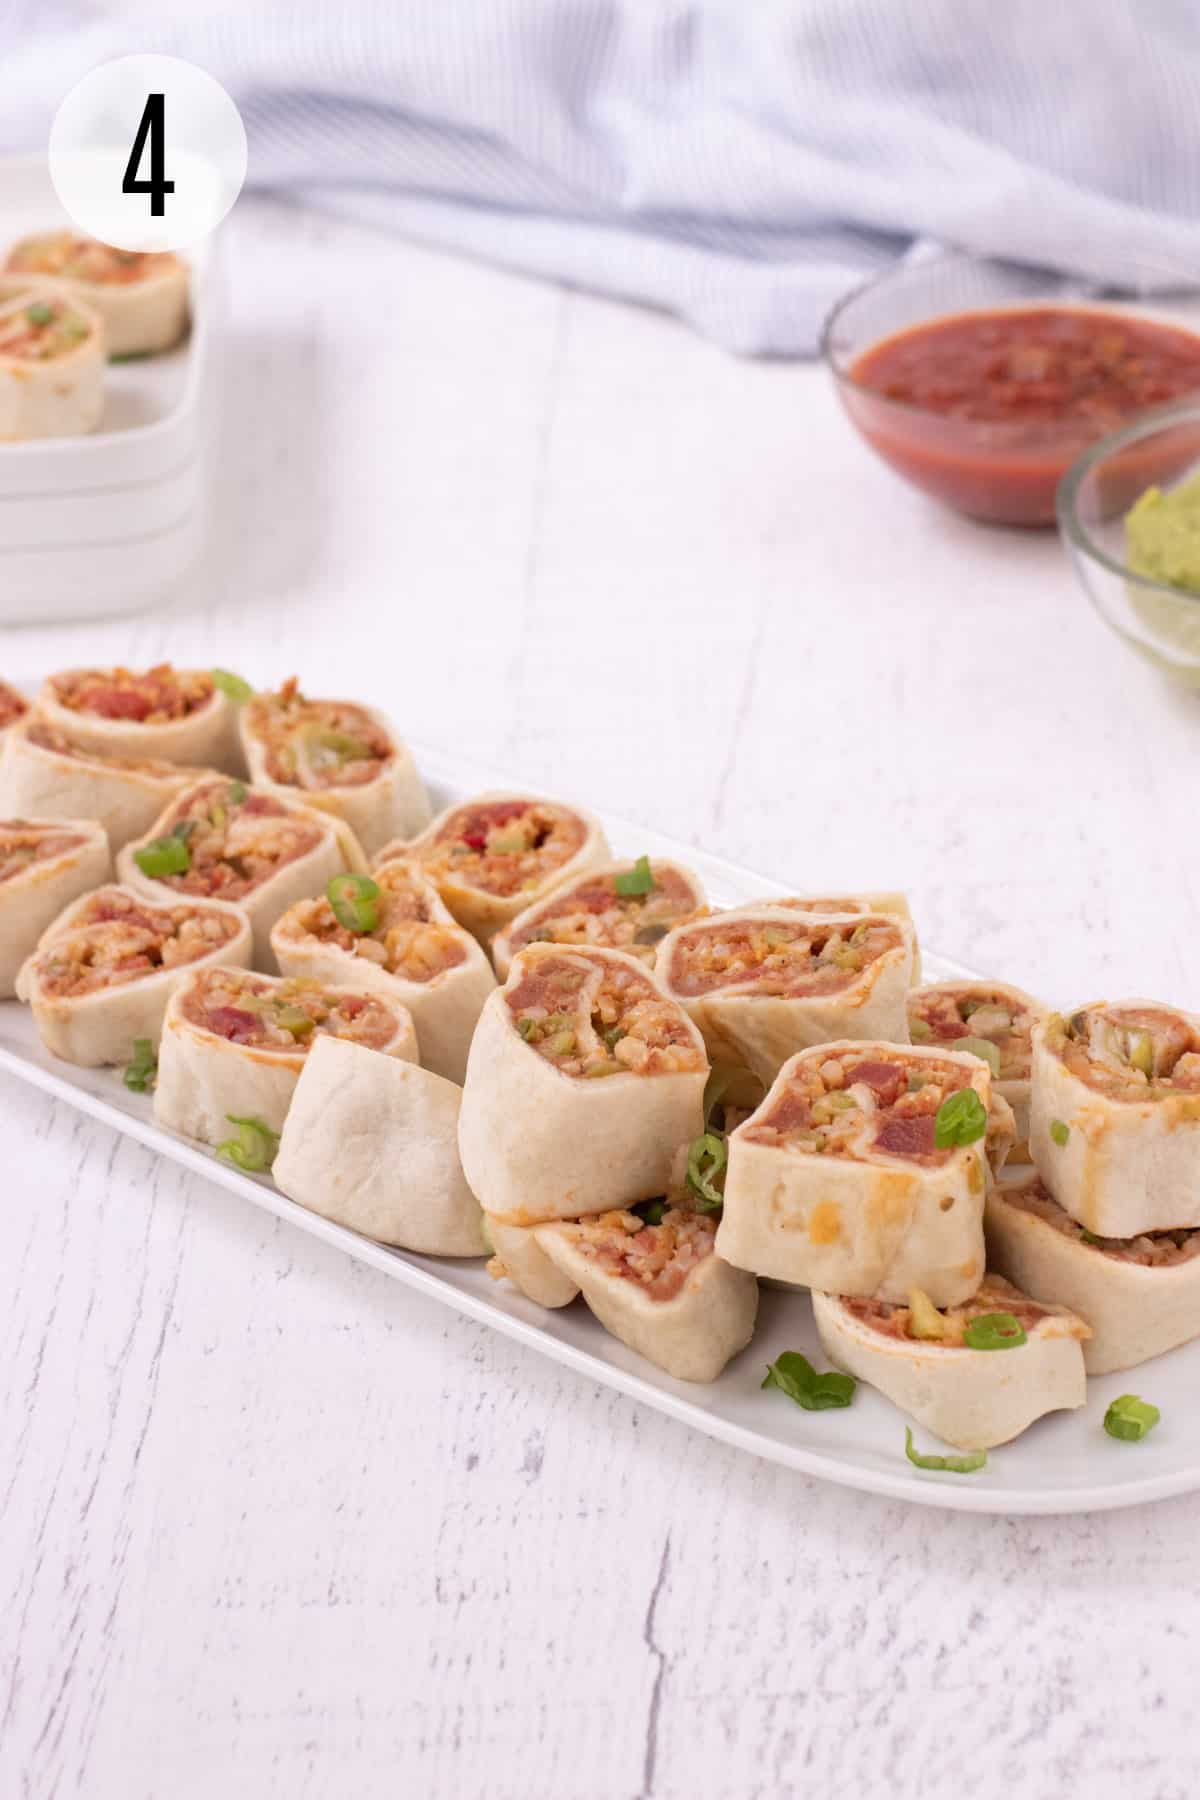 Platter with stacked burrito bites garnished with sliced green onions and plate of more bites and bowls of guacamole and salsa in upper background.